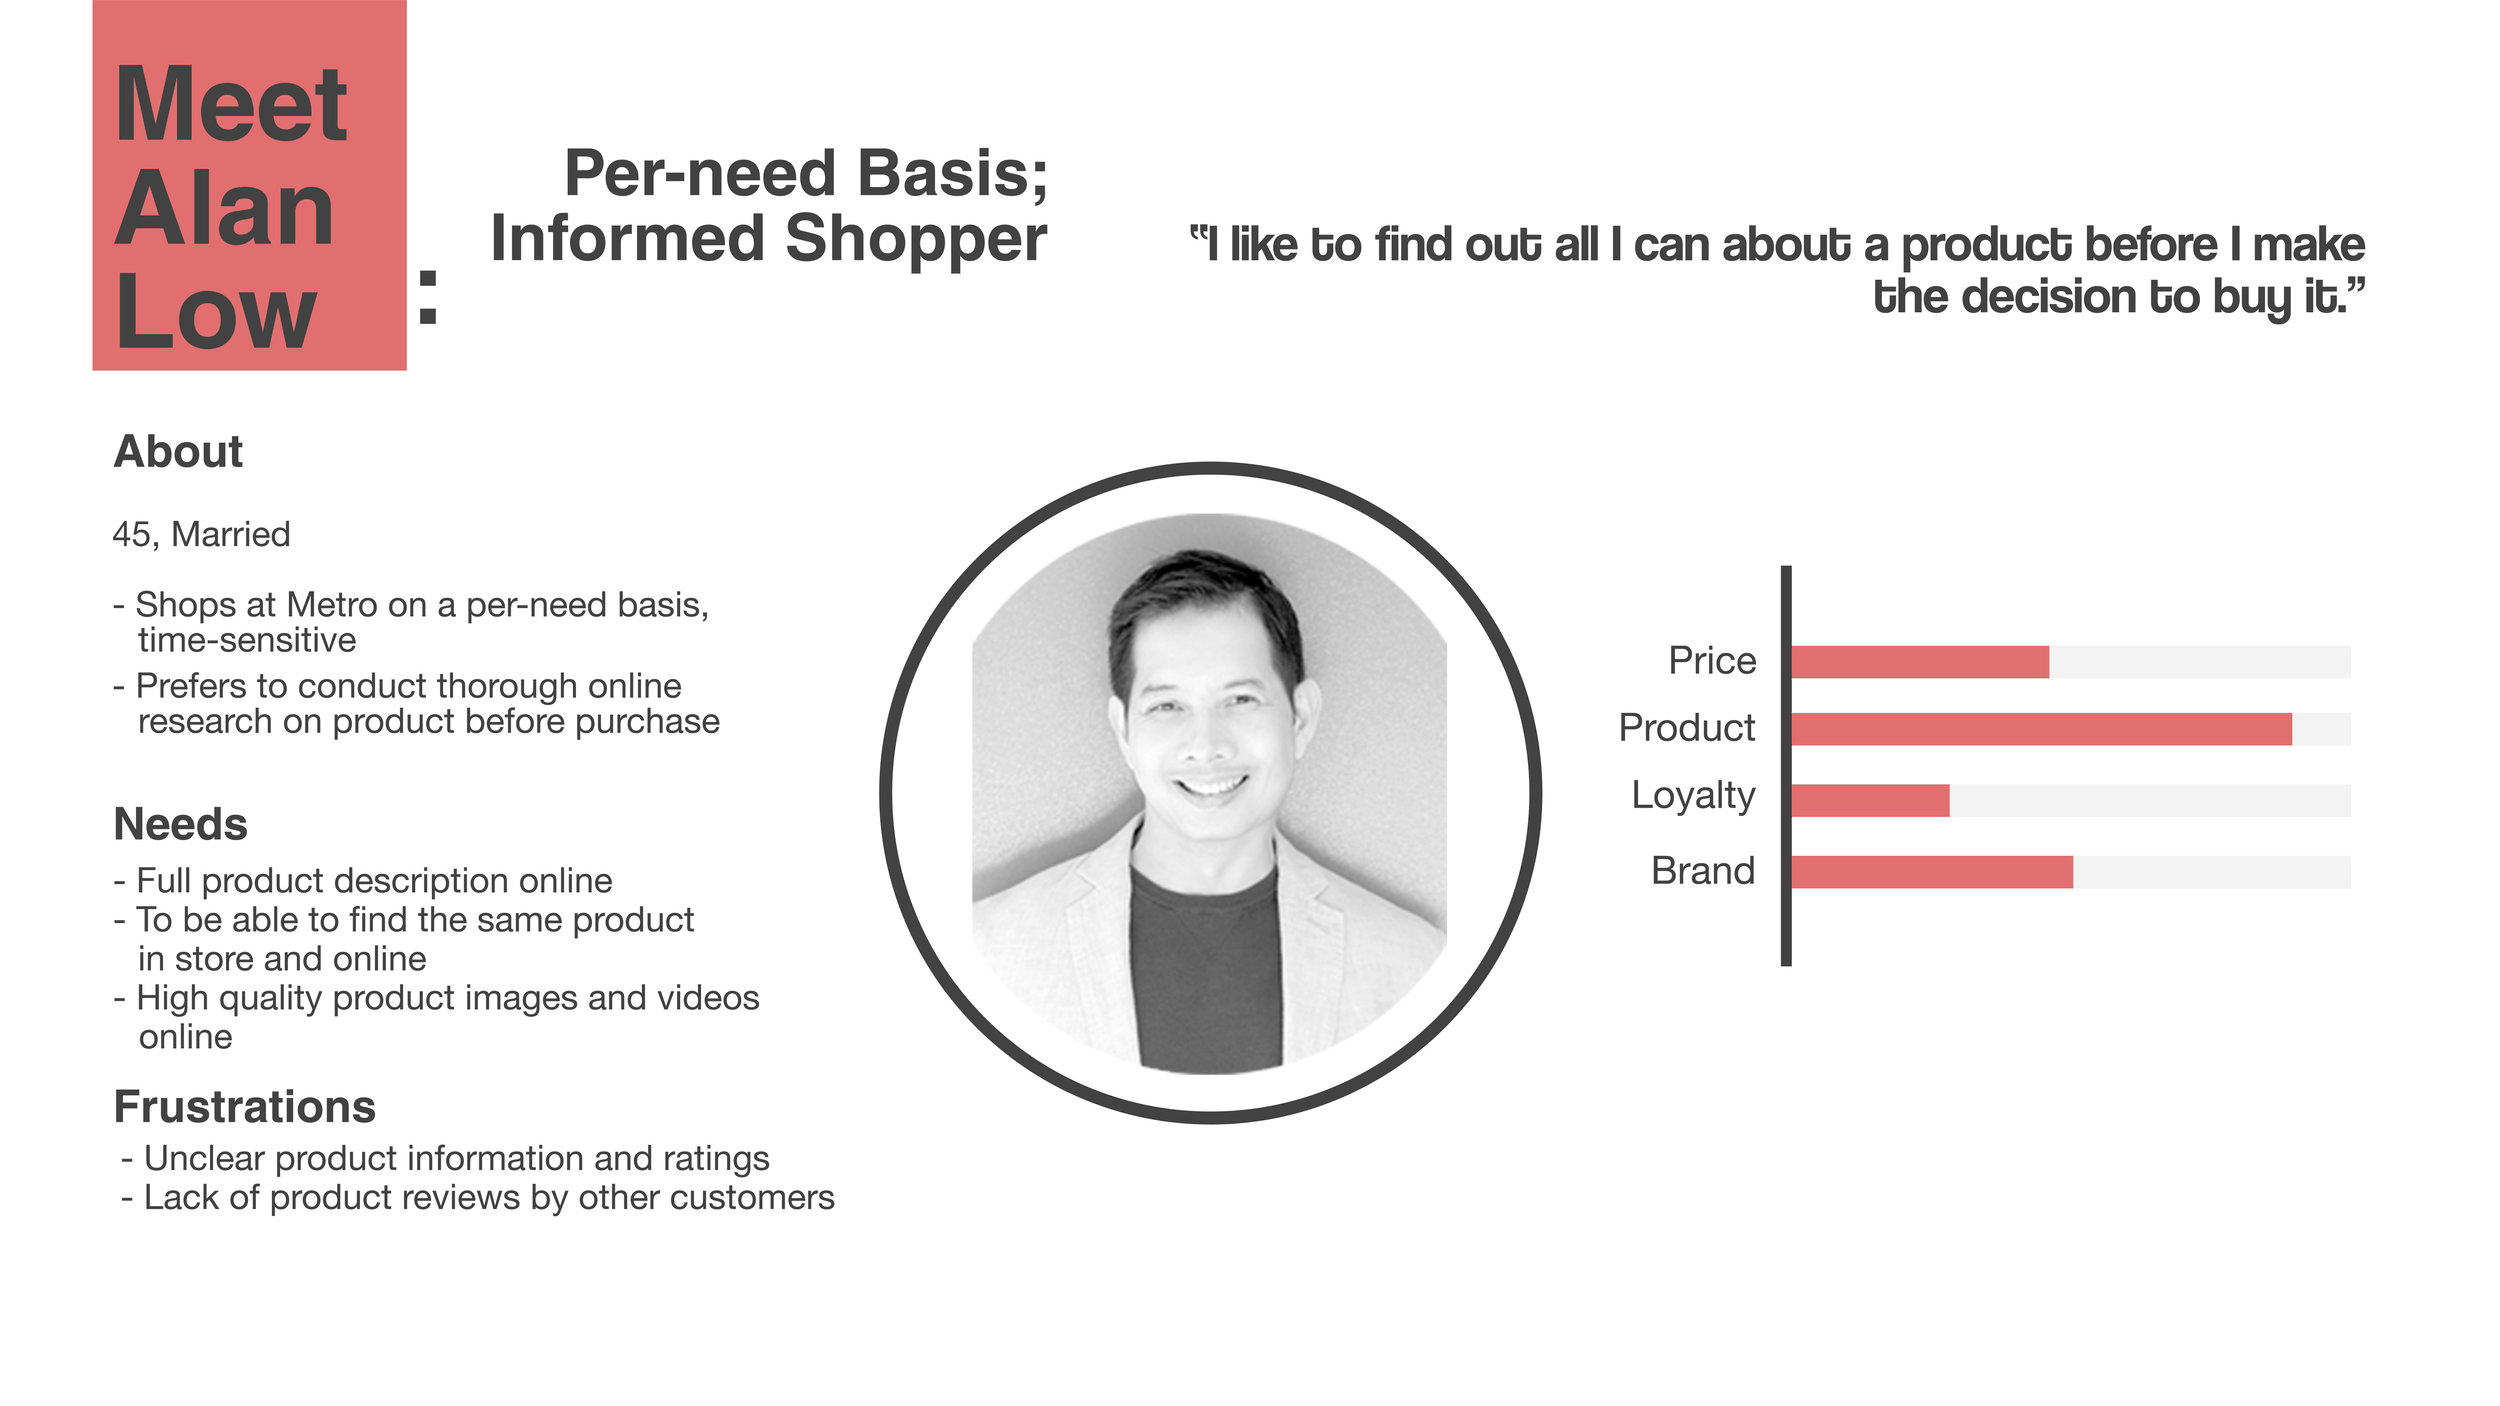 Persona #2: Alan Low - per-need basis; informed shopper